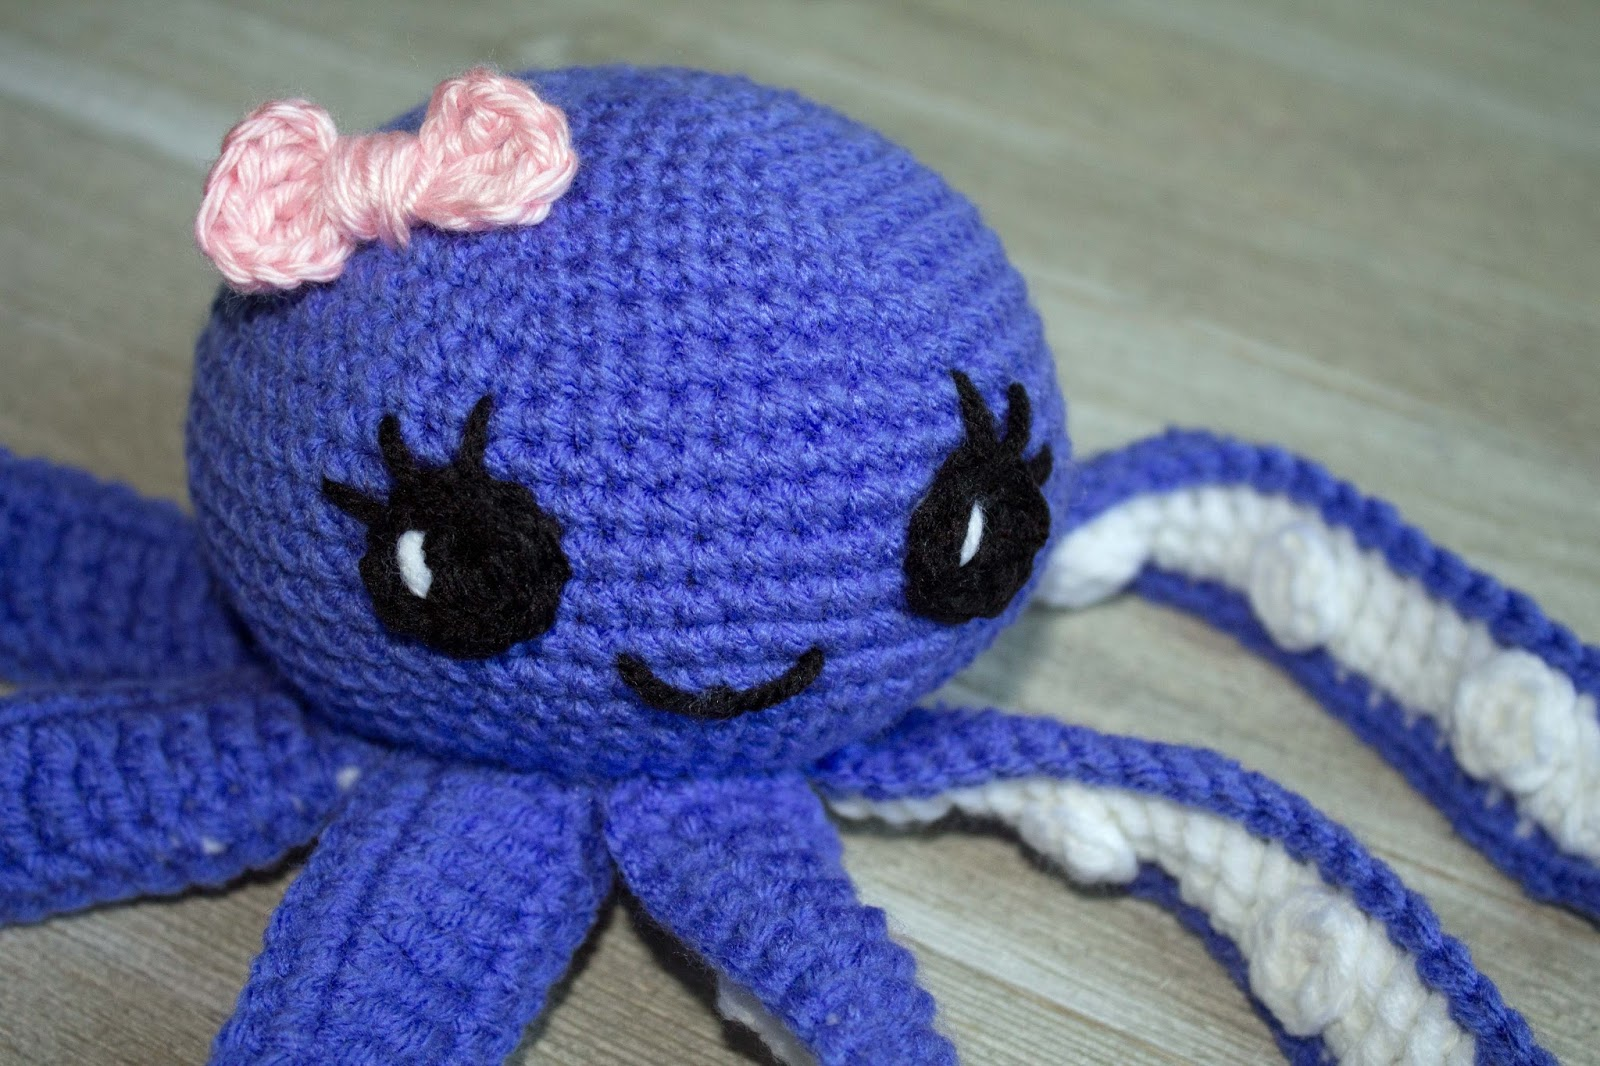 Knitting Pattern Octopus Toy : Amigurumi Octopus Baby Toy Free Pattern - The Friendly Red Fox